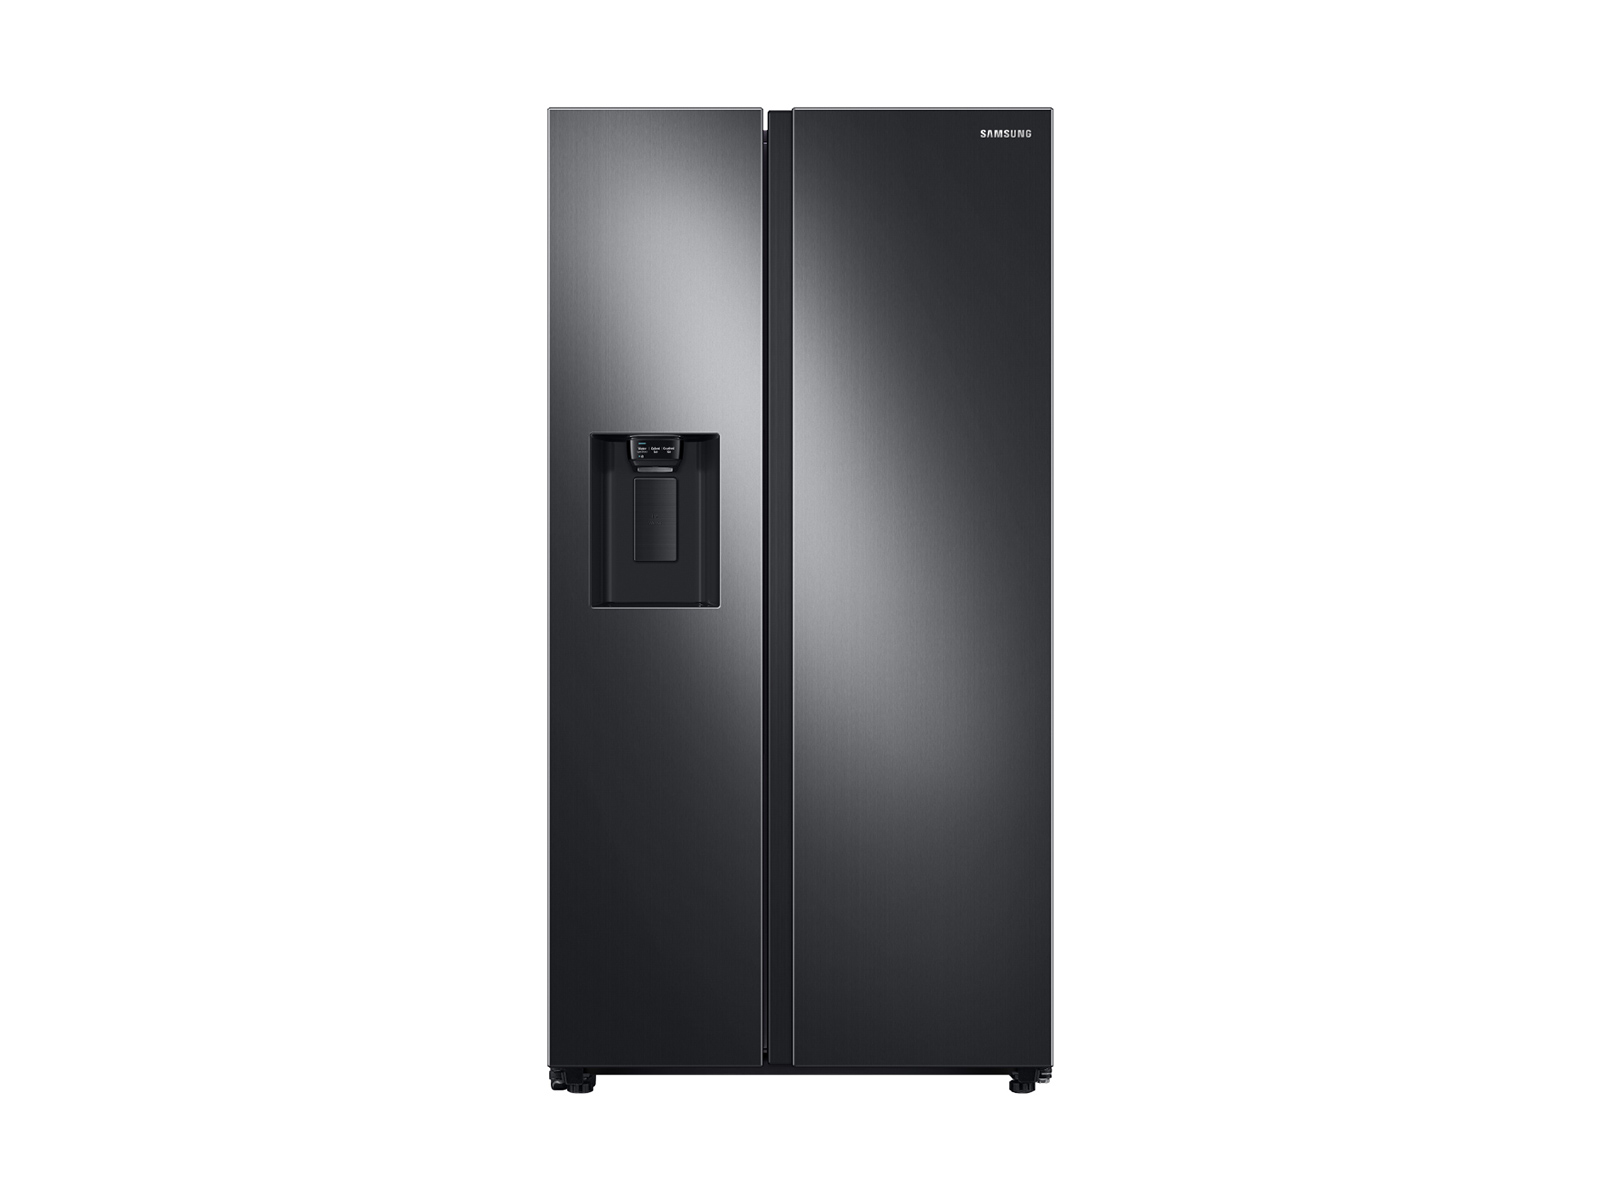 Large capacity Side-by-Side refrigerator & electric range package in black stainless